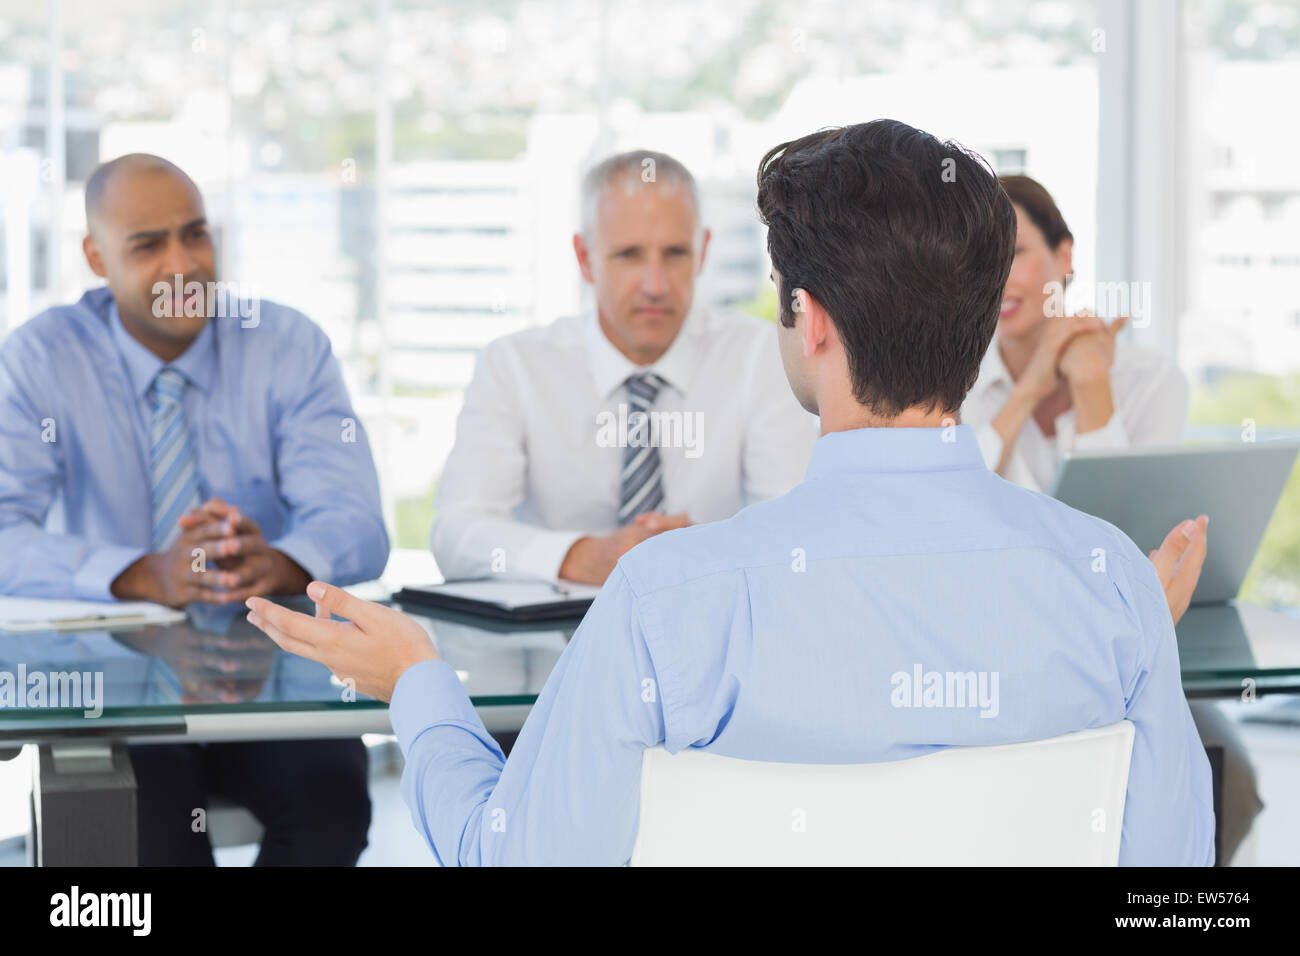 Businessman at work interview - Stock Image